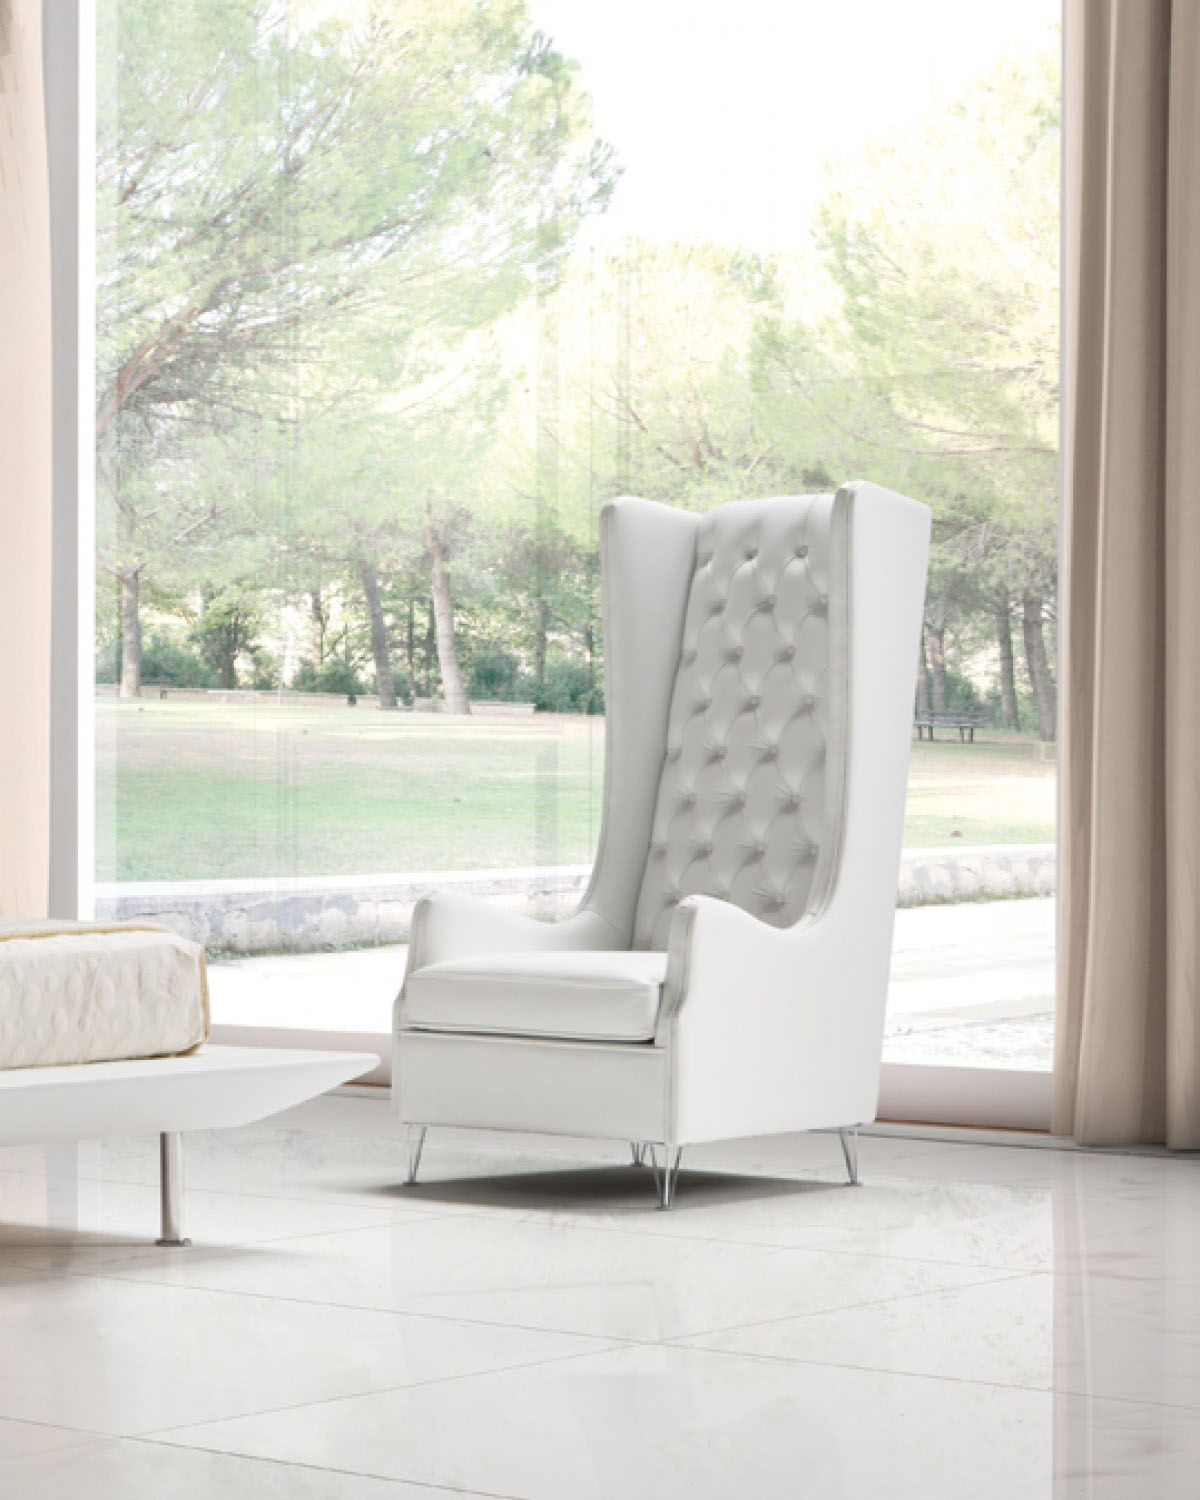 Strange Tufted White Leather Italian Made Accent Chair Ibusinesslaw Wood Chair Design Ideas Ibusinesslaworg